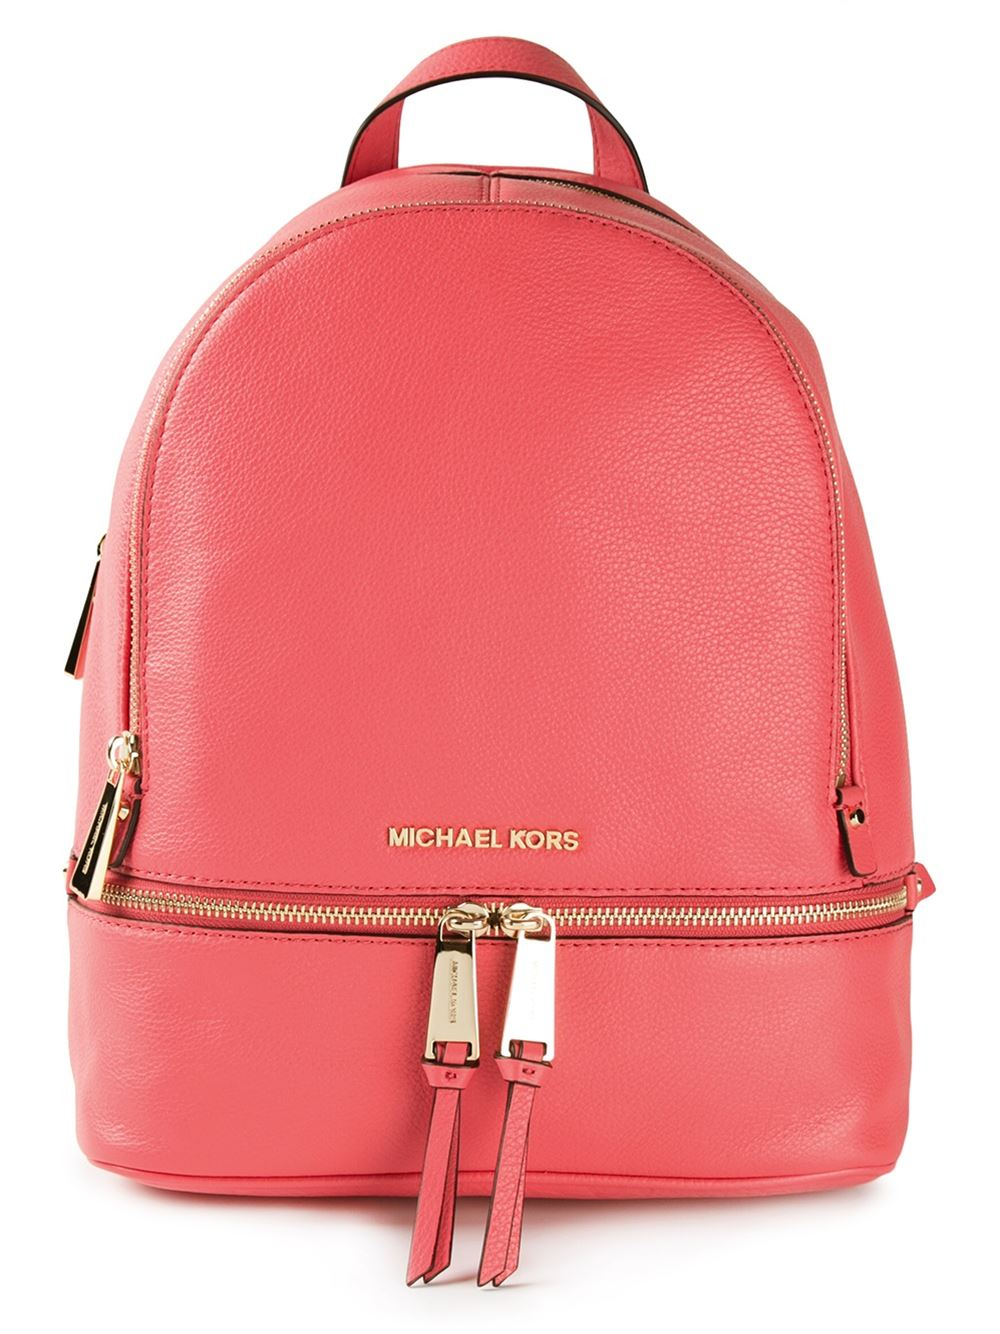 00984505d7f0 ... top quality lyst michael kors rhea backpack in red 5ace7 4416d